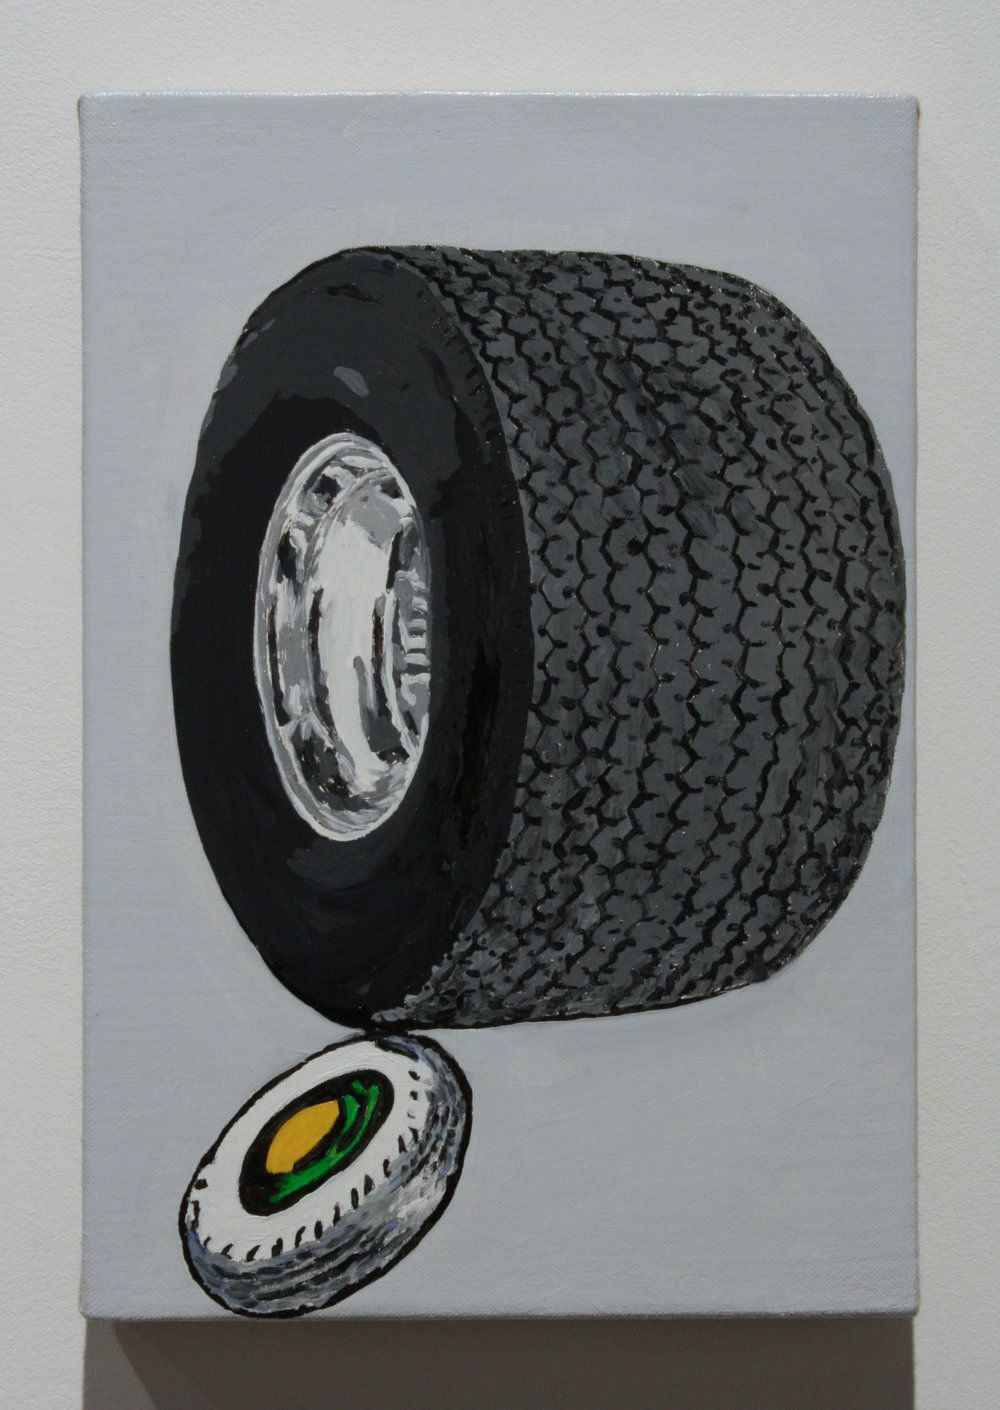 """Untitled, (2 Tires)"", 2016 , oil on linen, 12 x 8 inches"